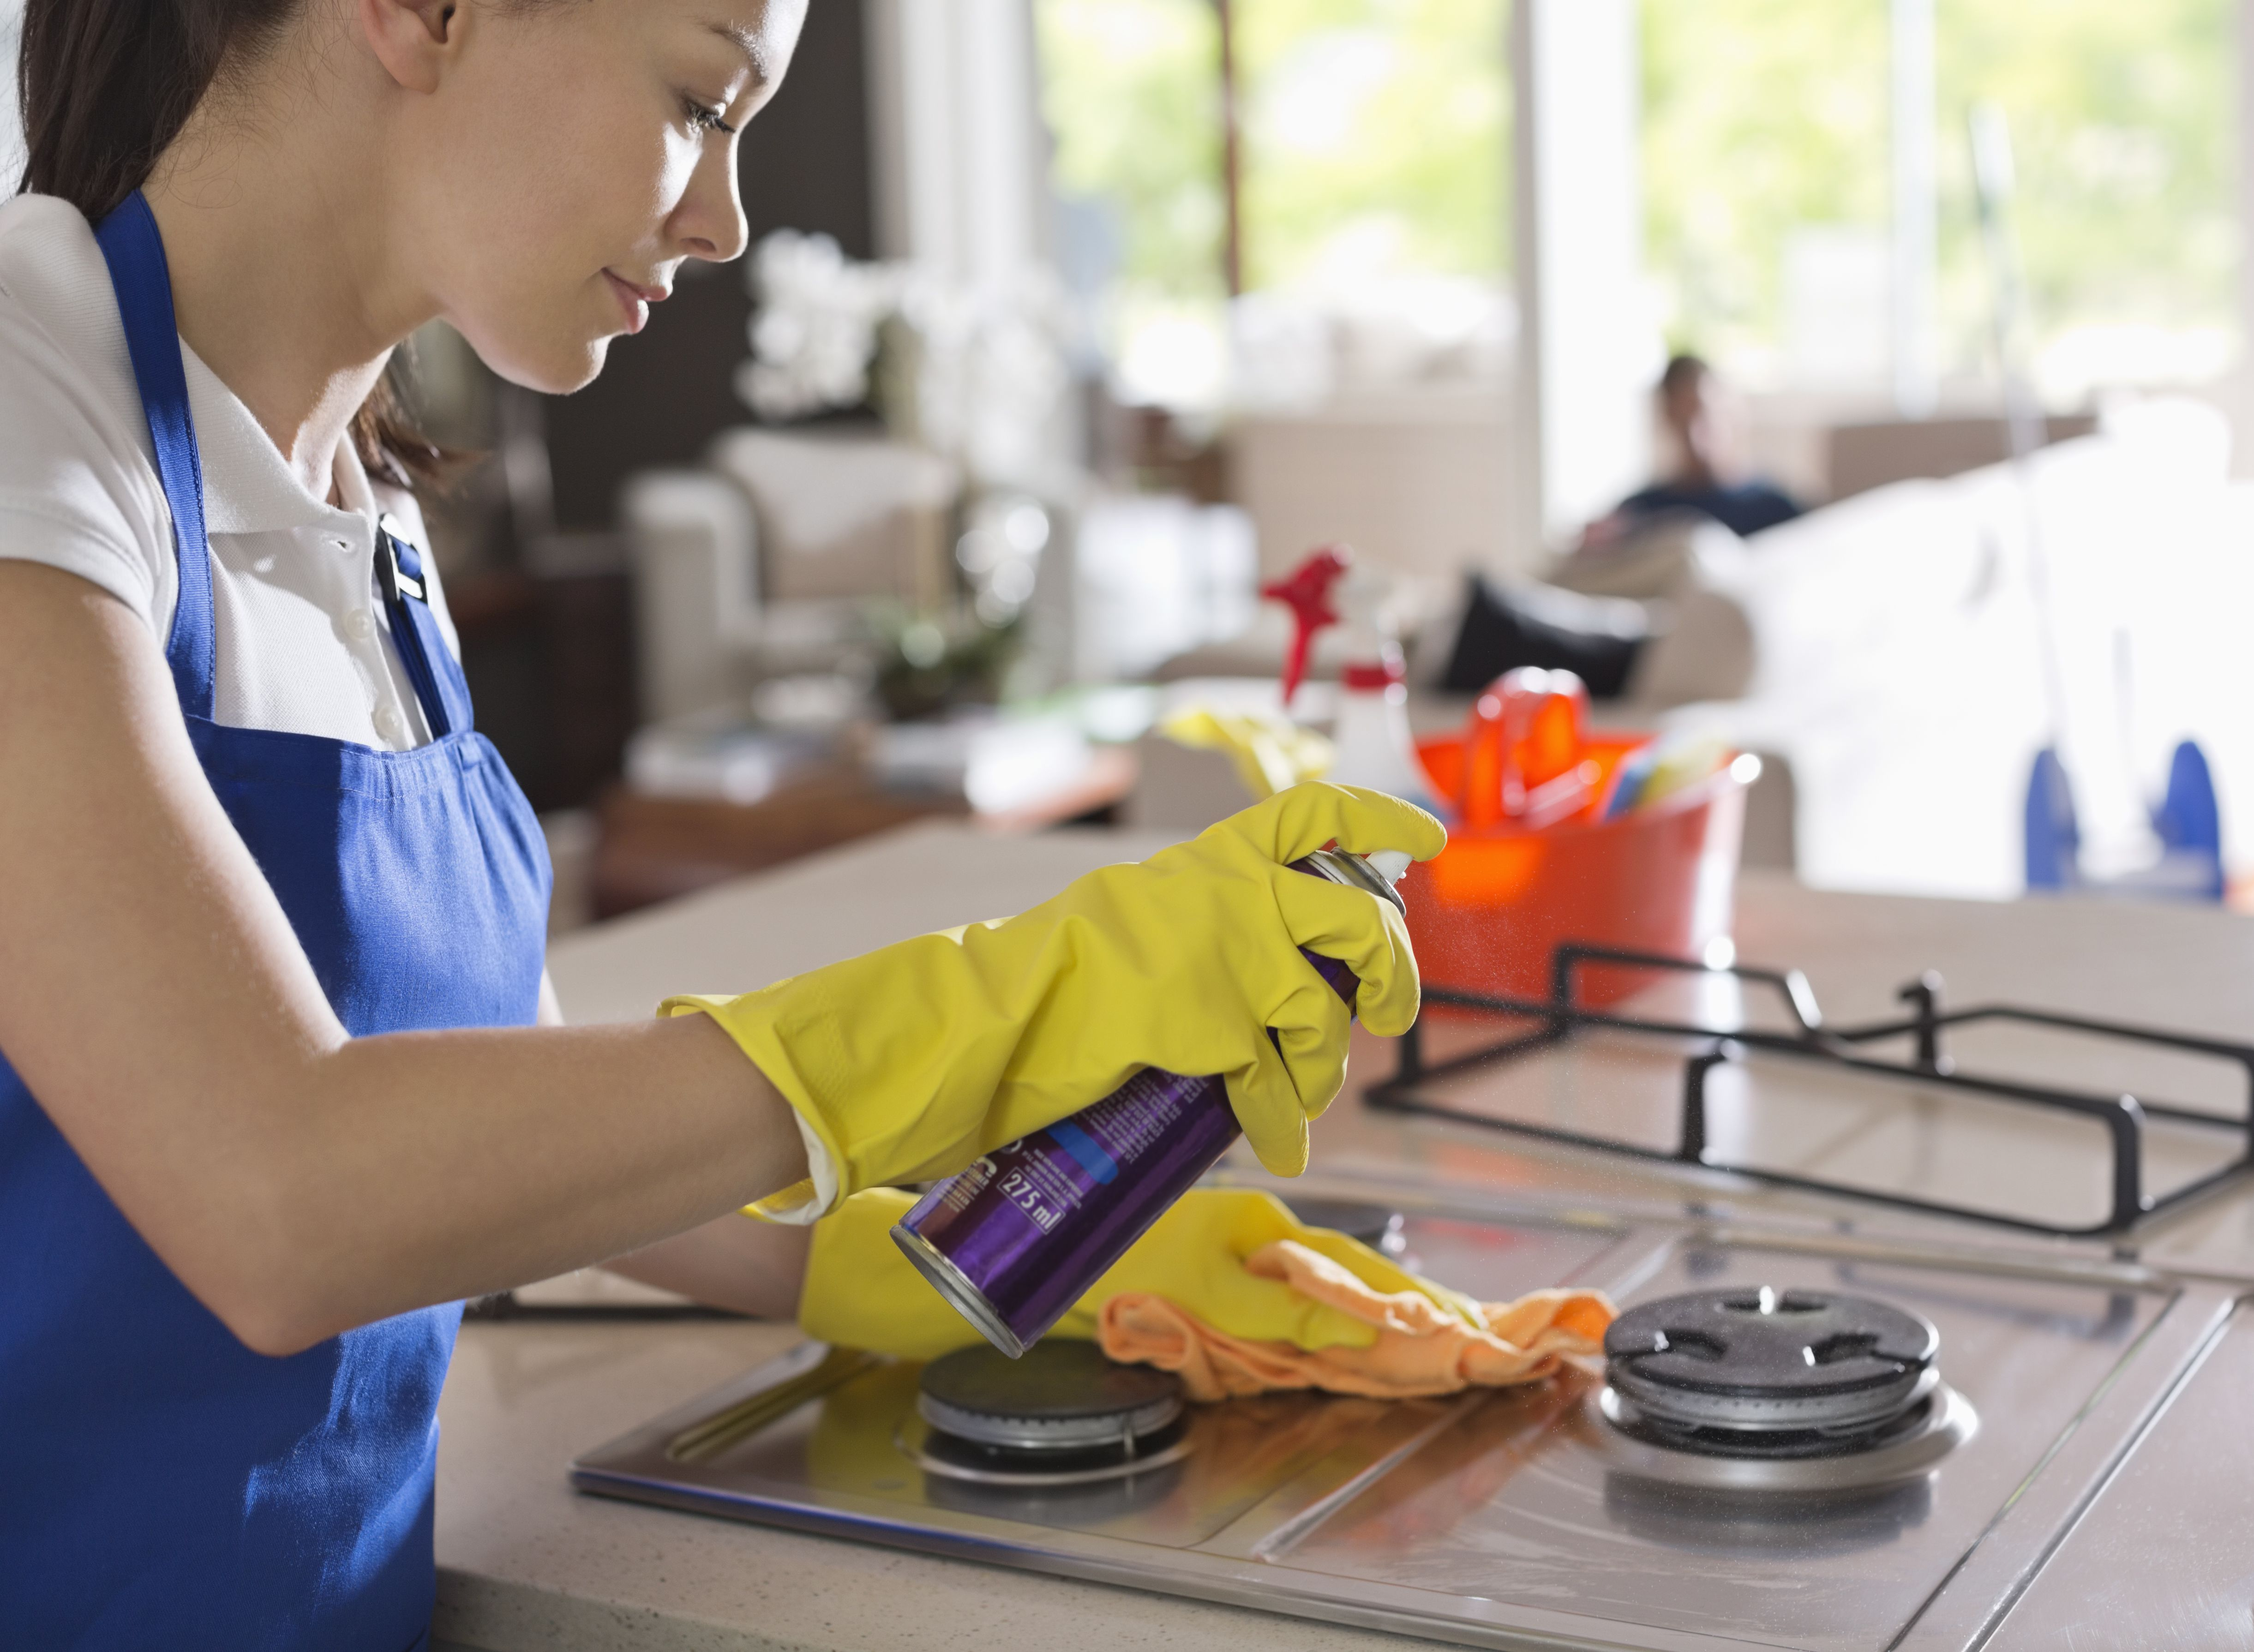 Female maid wearing gloves cleaning a stove top